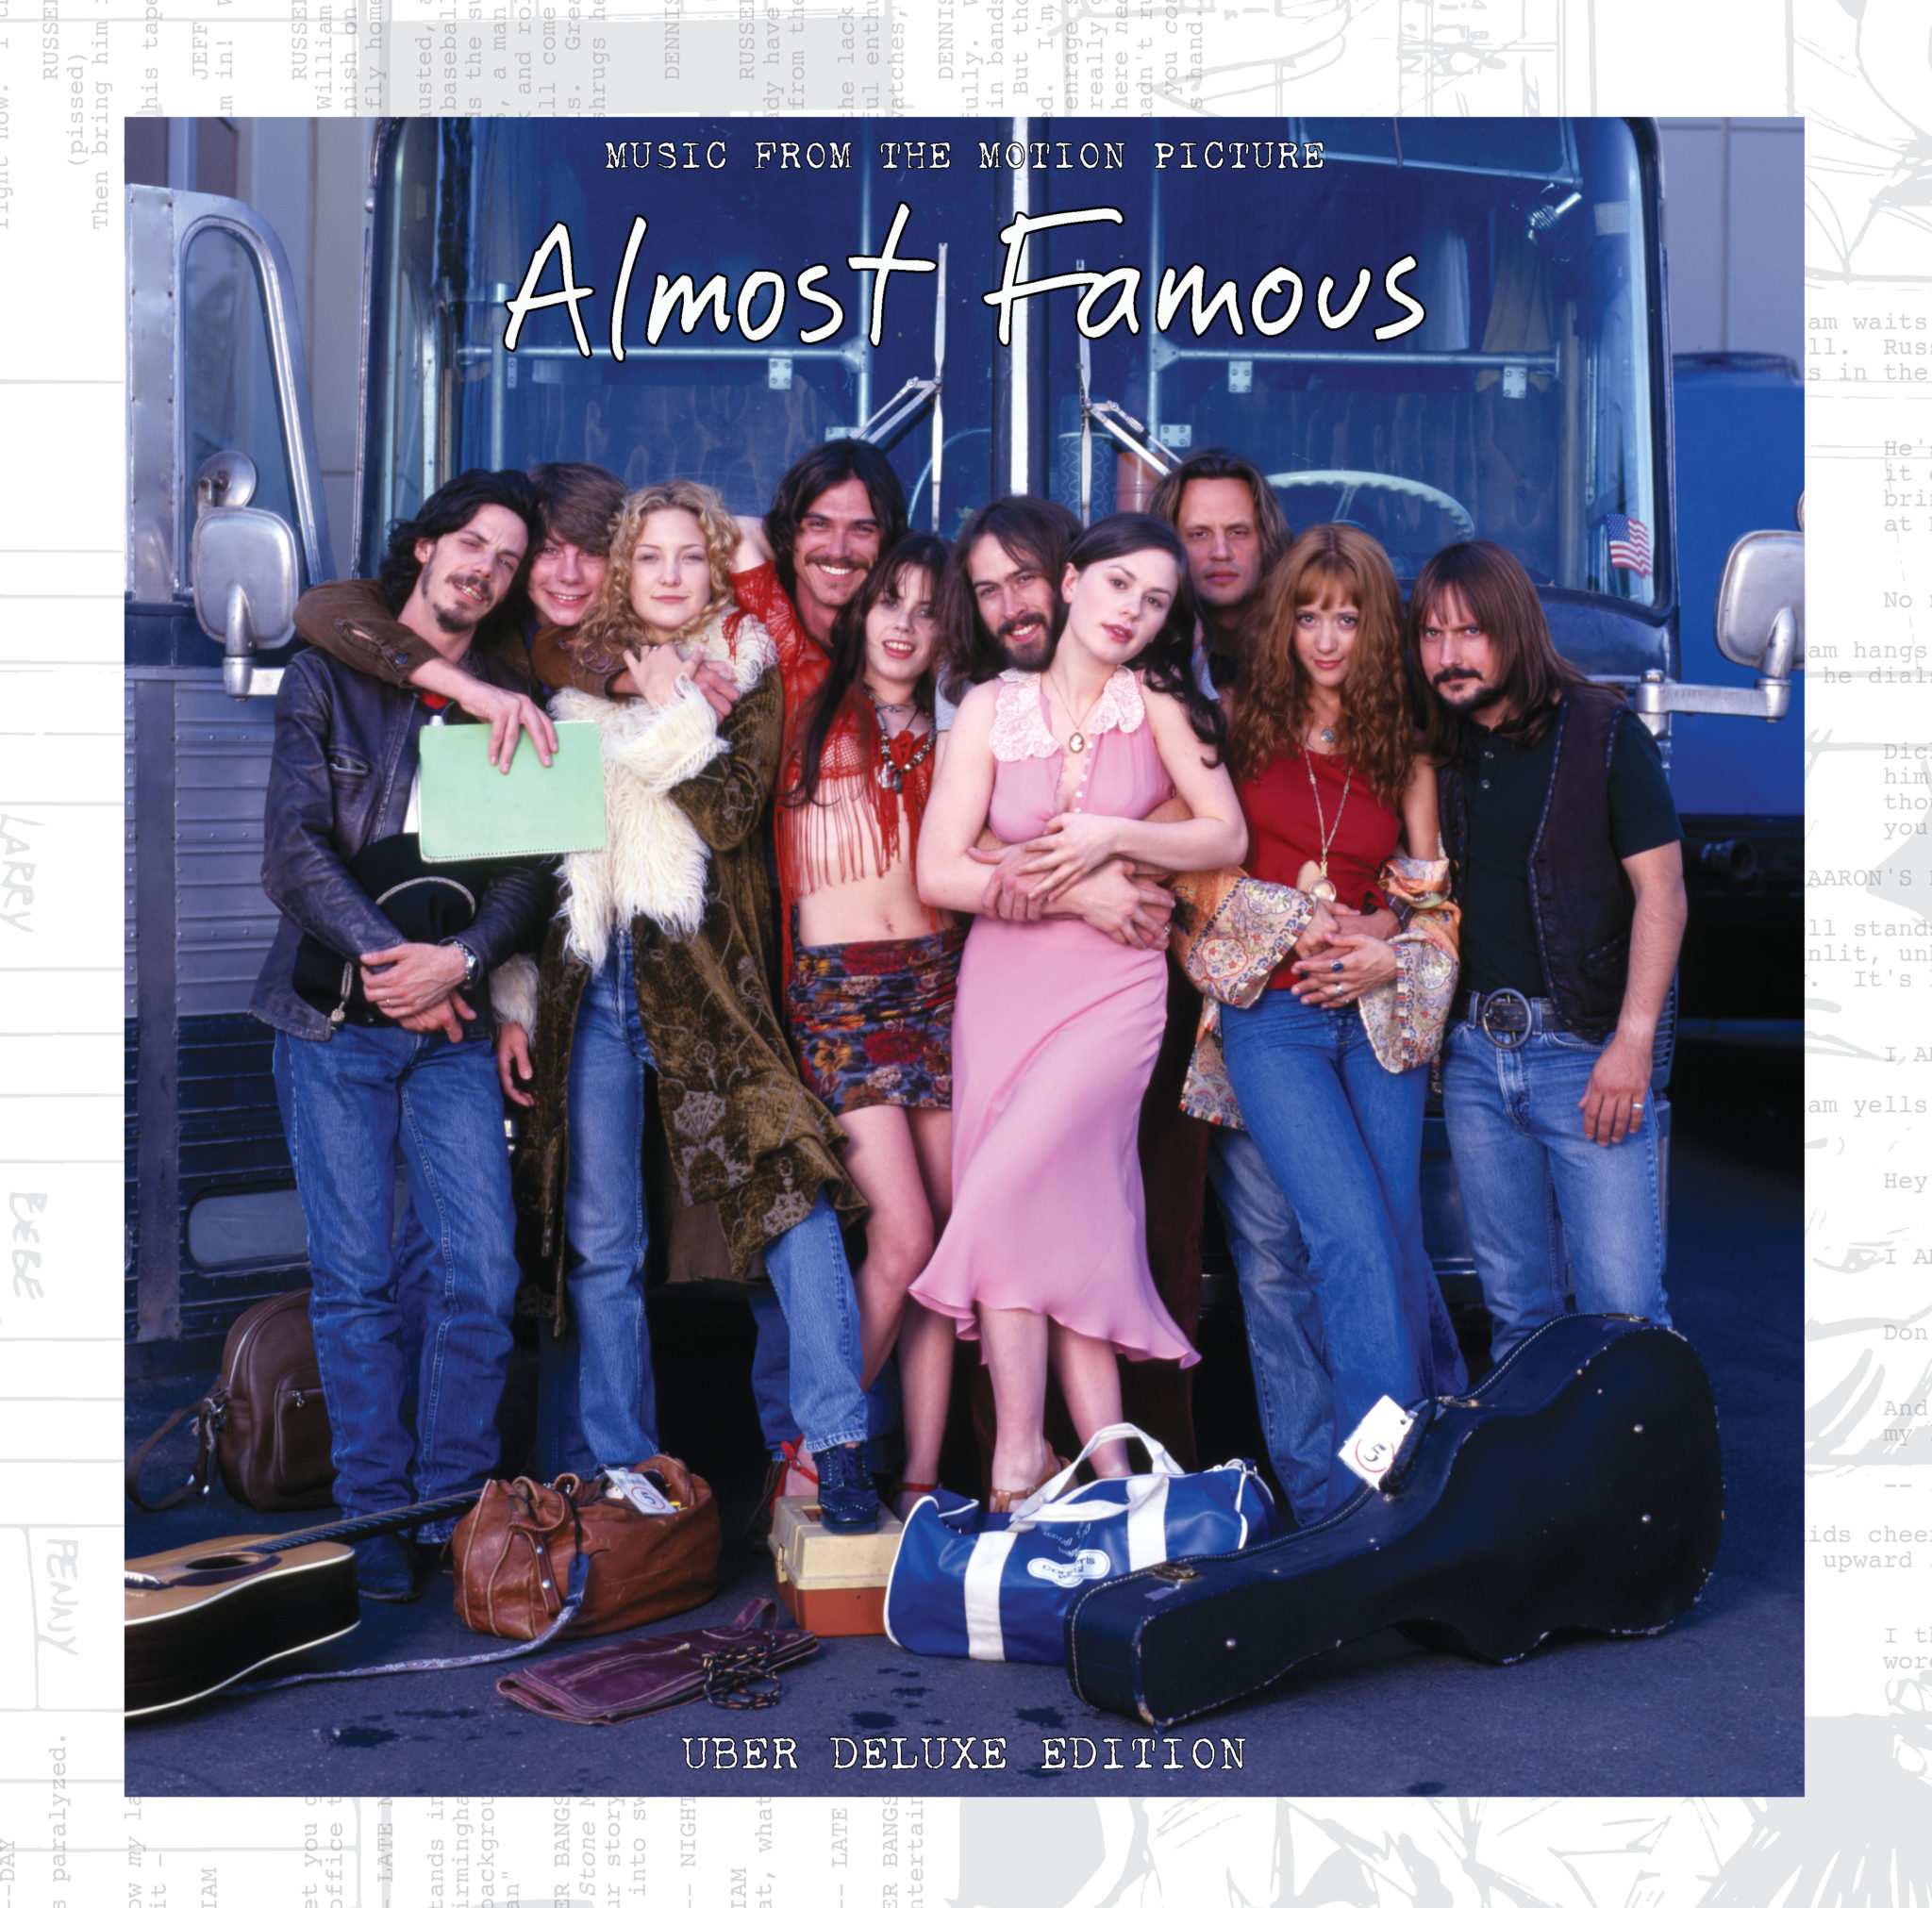 Almost Famous_7LP 5CD Uber Deluxe Edition